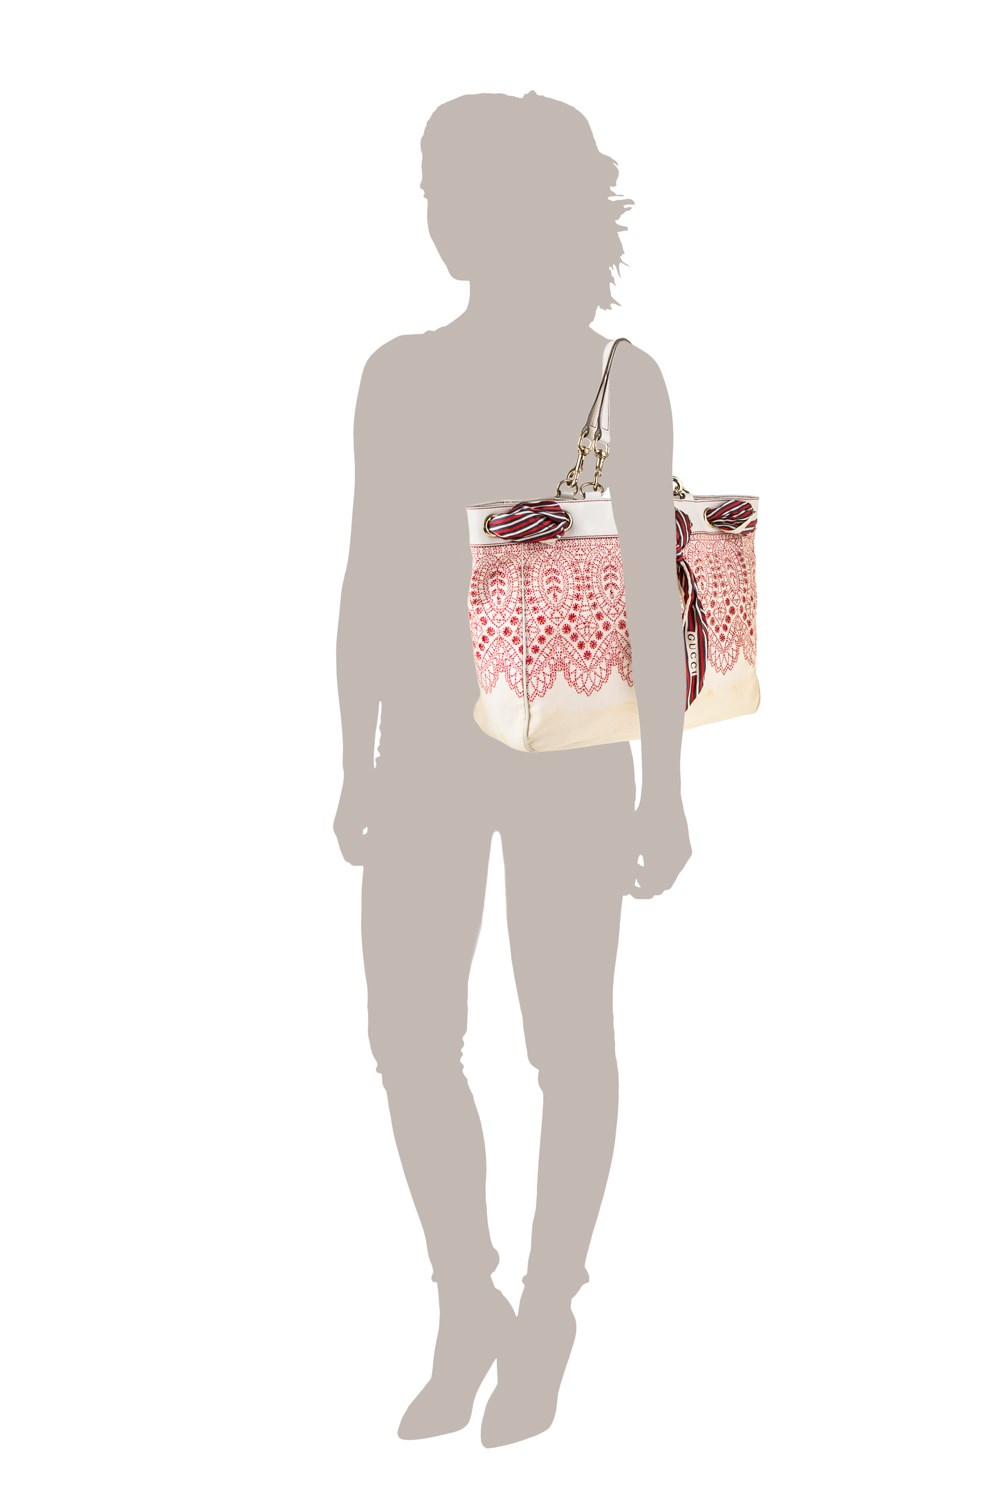 3a51328f578 ... Positano Embroidered Tote Bag with Scarf. Mouse ...